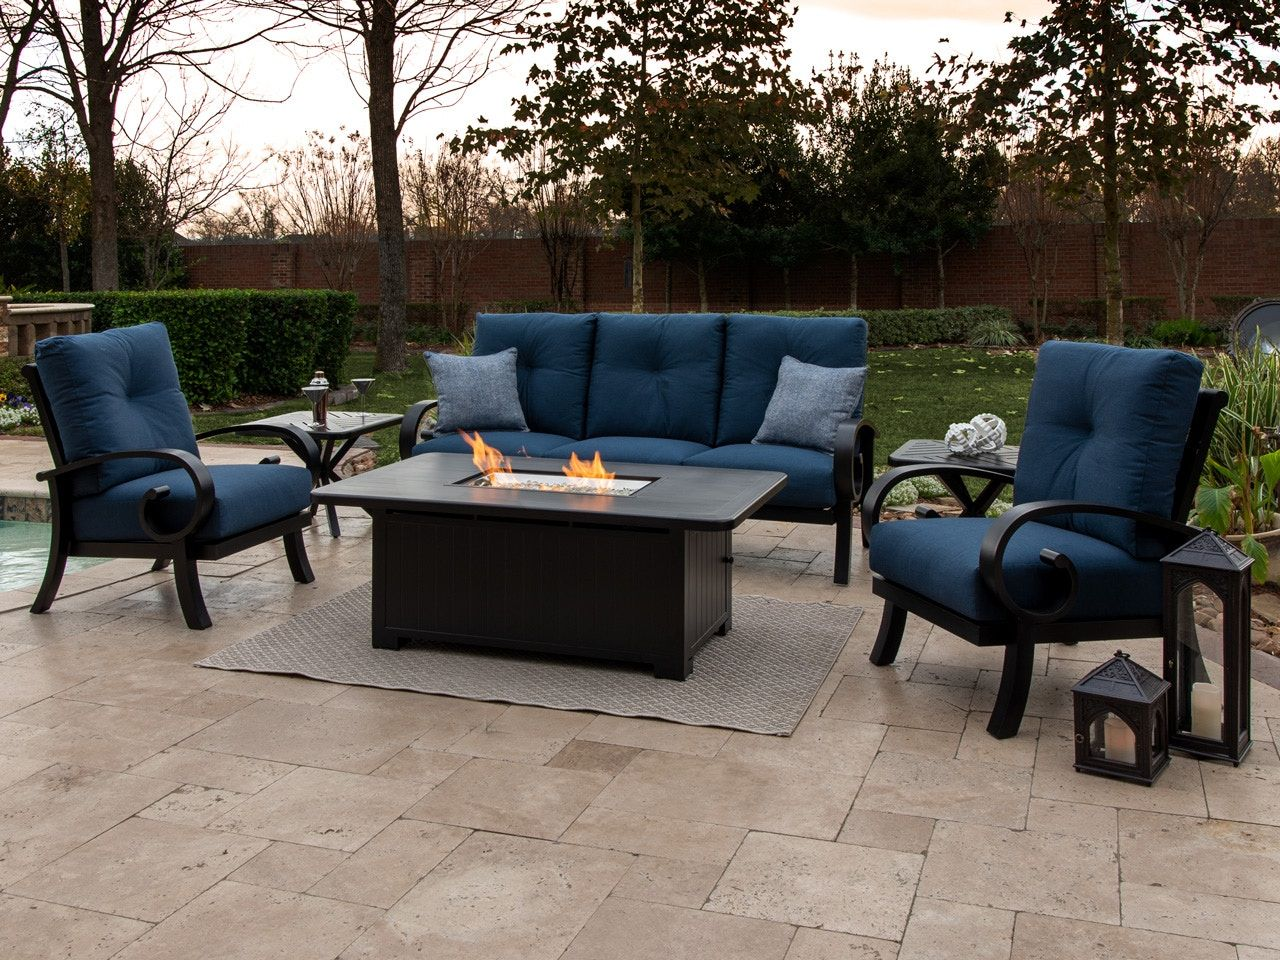 Patio Furniture For Sale In Calgary